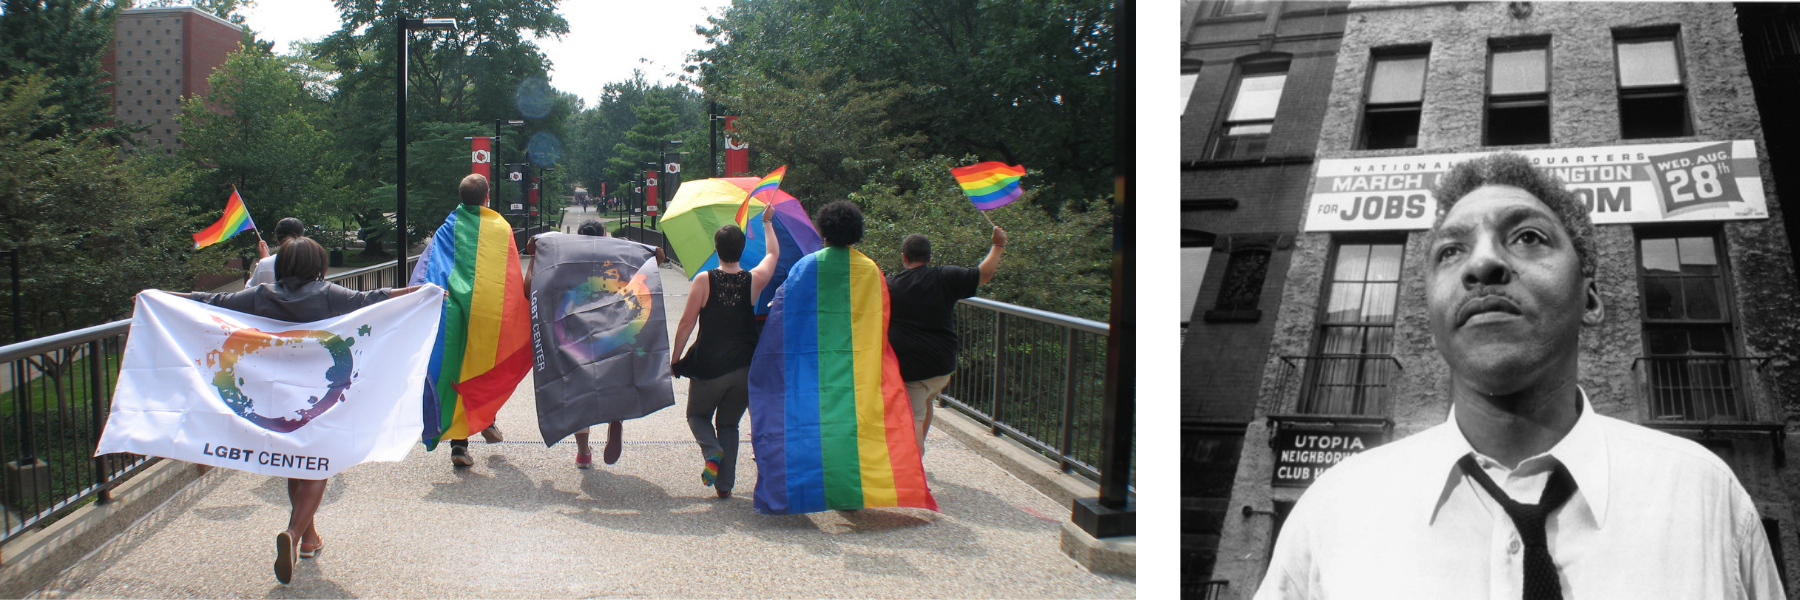 rustin members with rainbow flags and center flags running together down student activities center ramp. On right, photo of Bayard Rustin